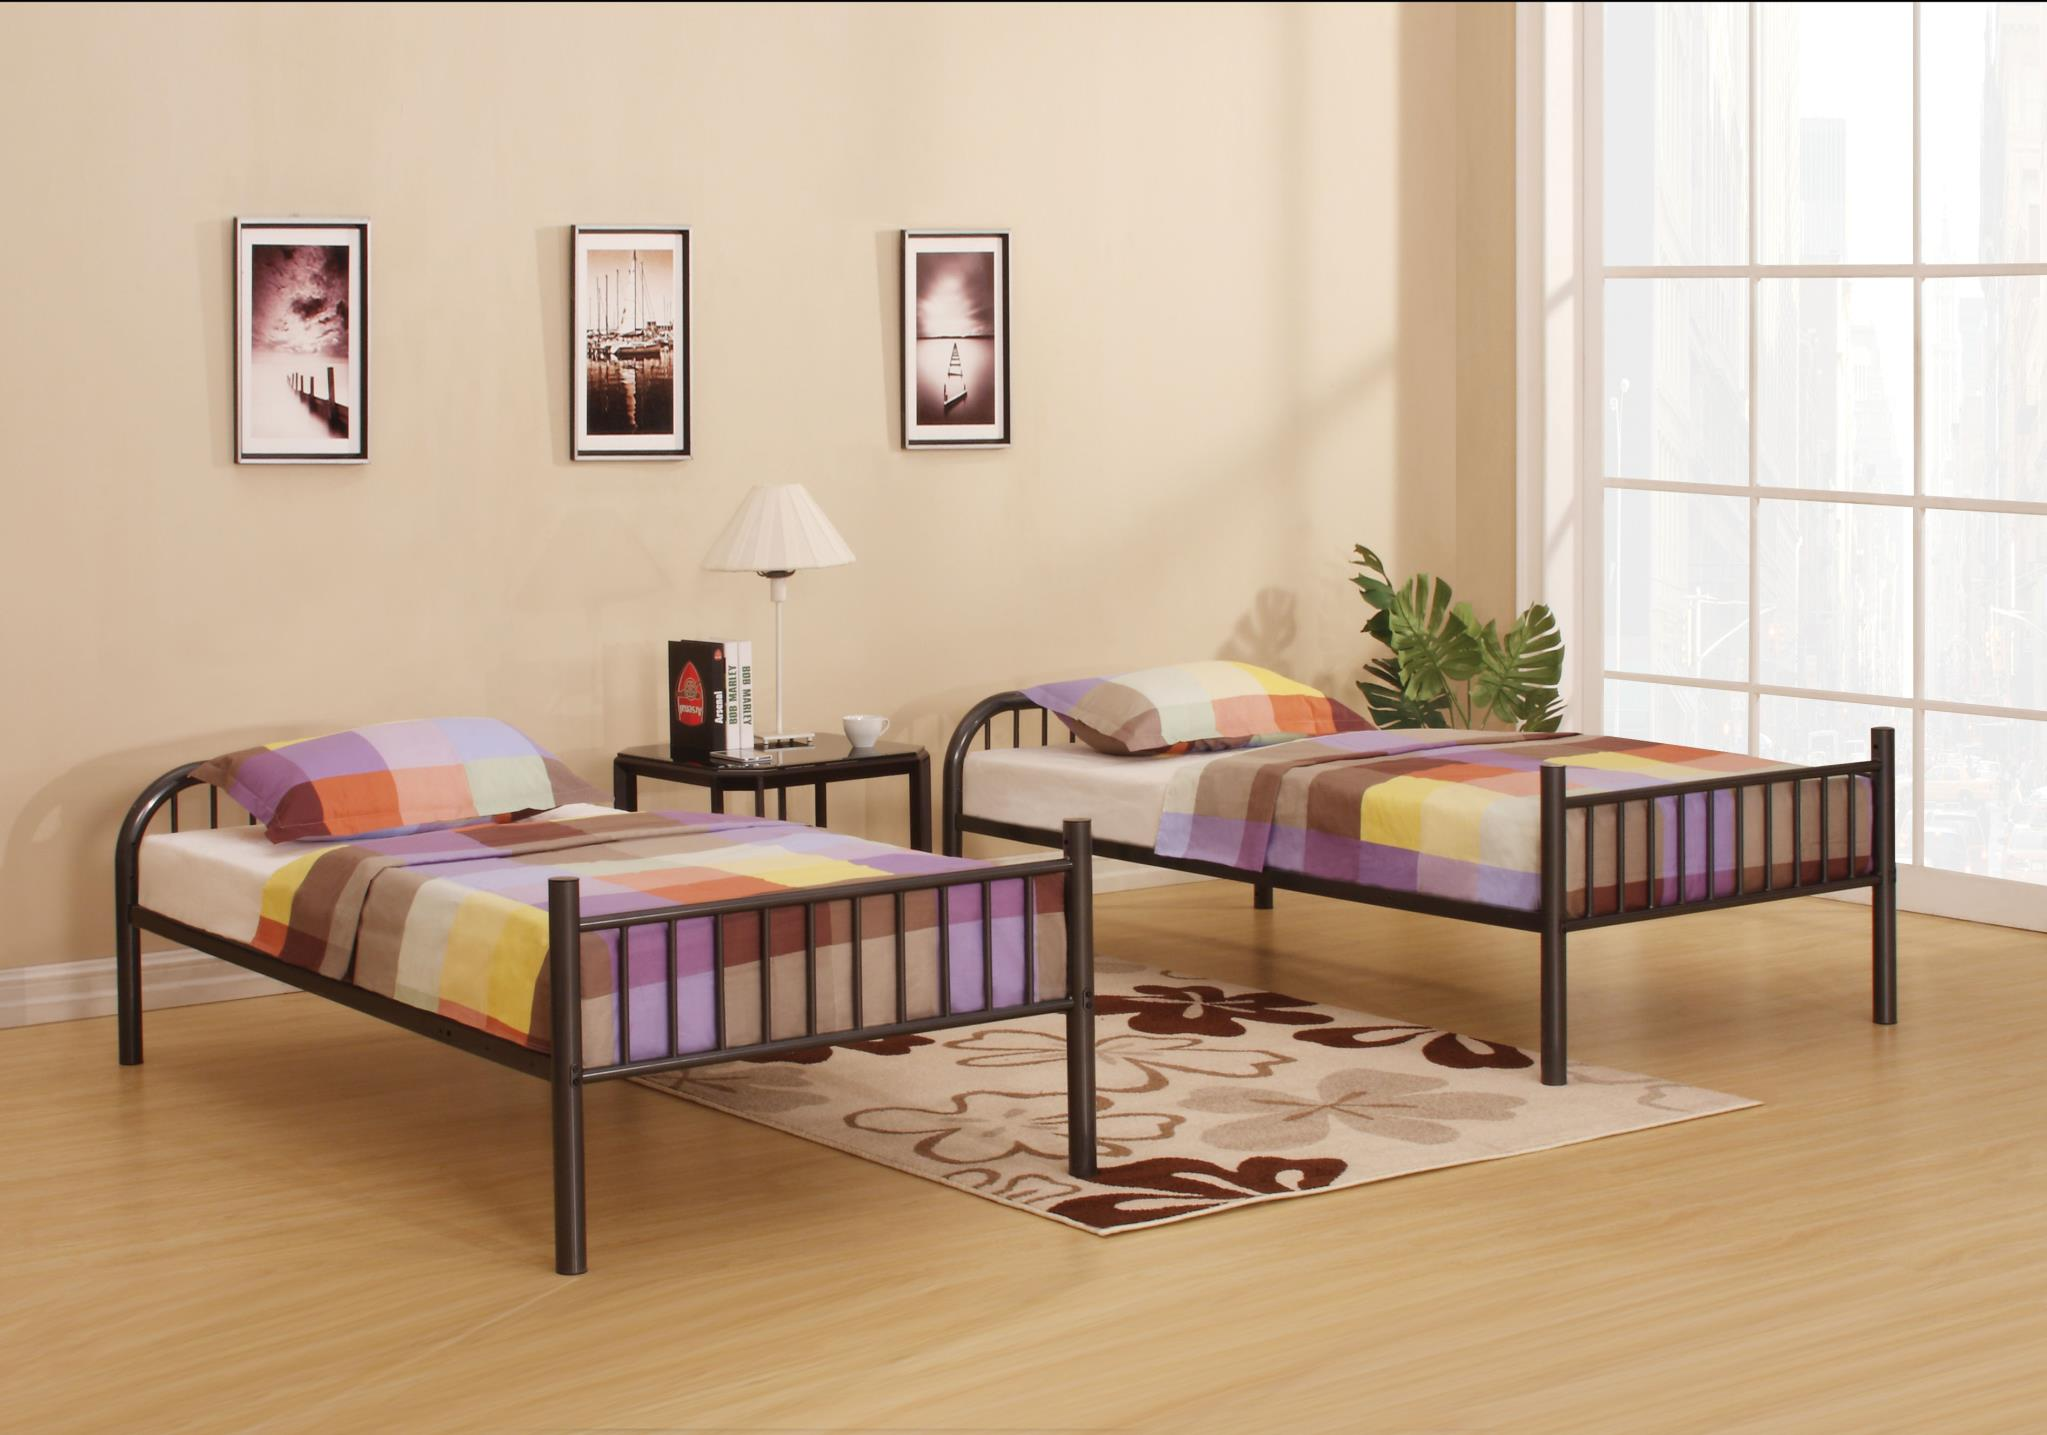 Twin Bunk Beds Used Separately